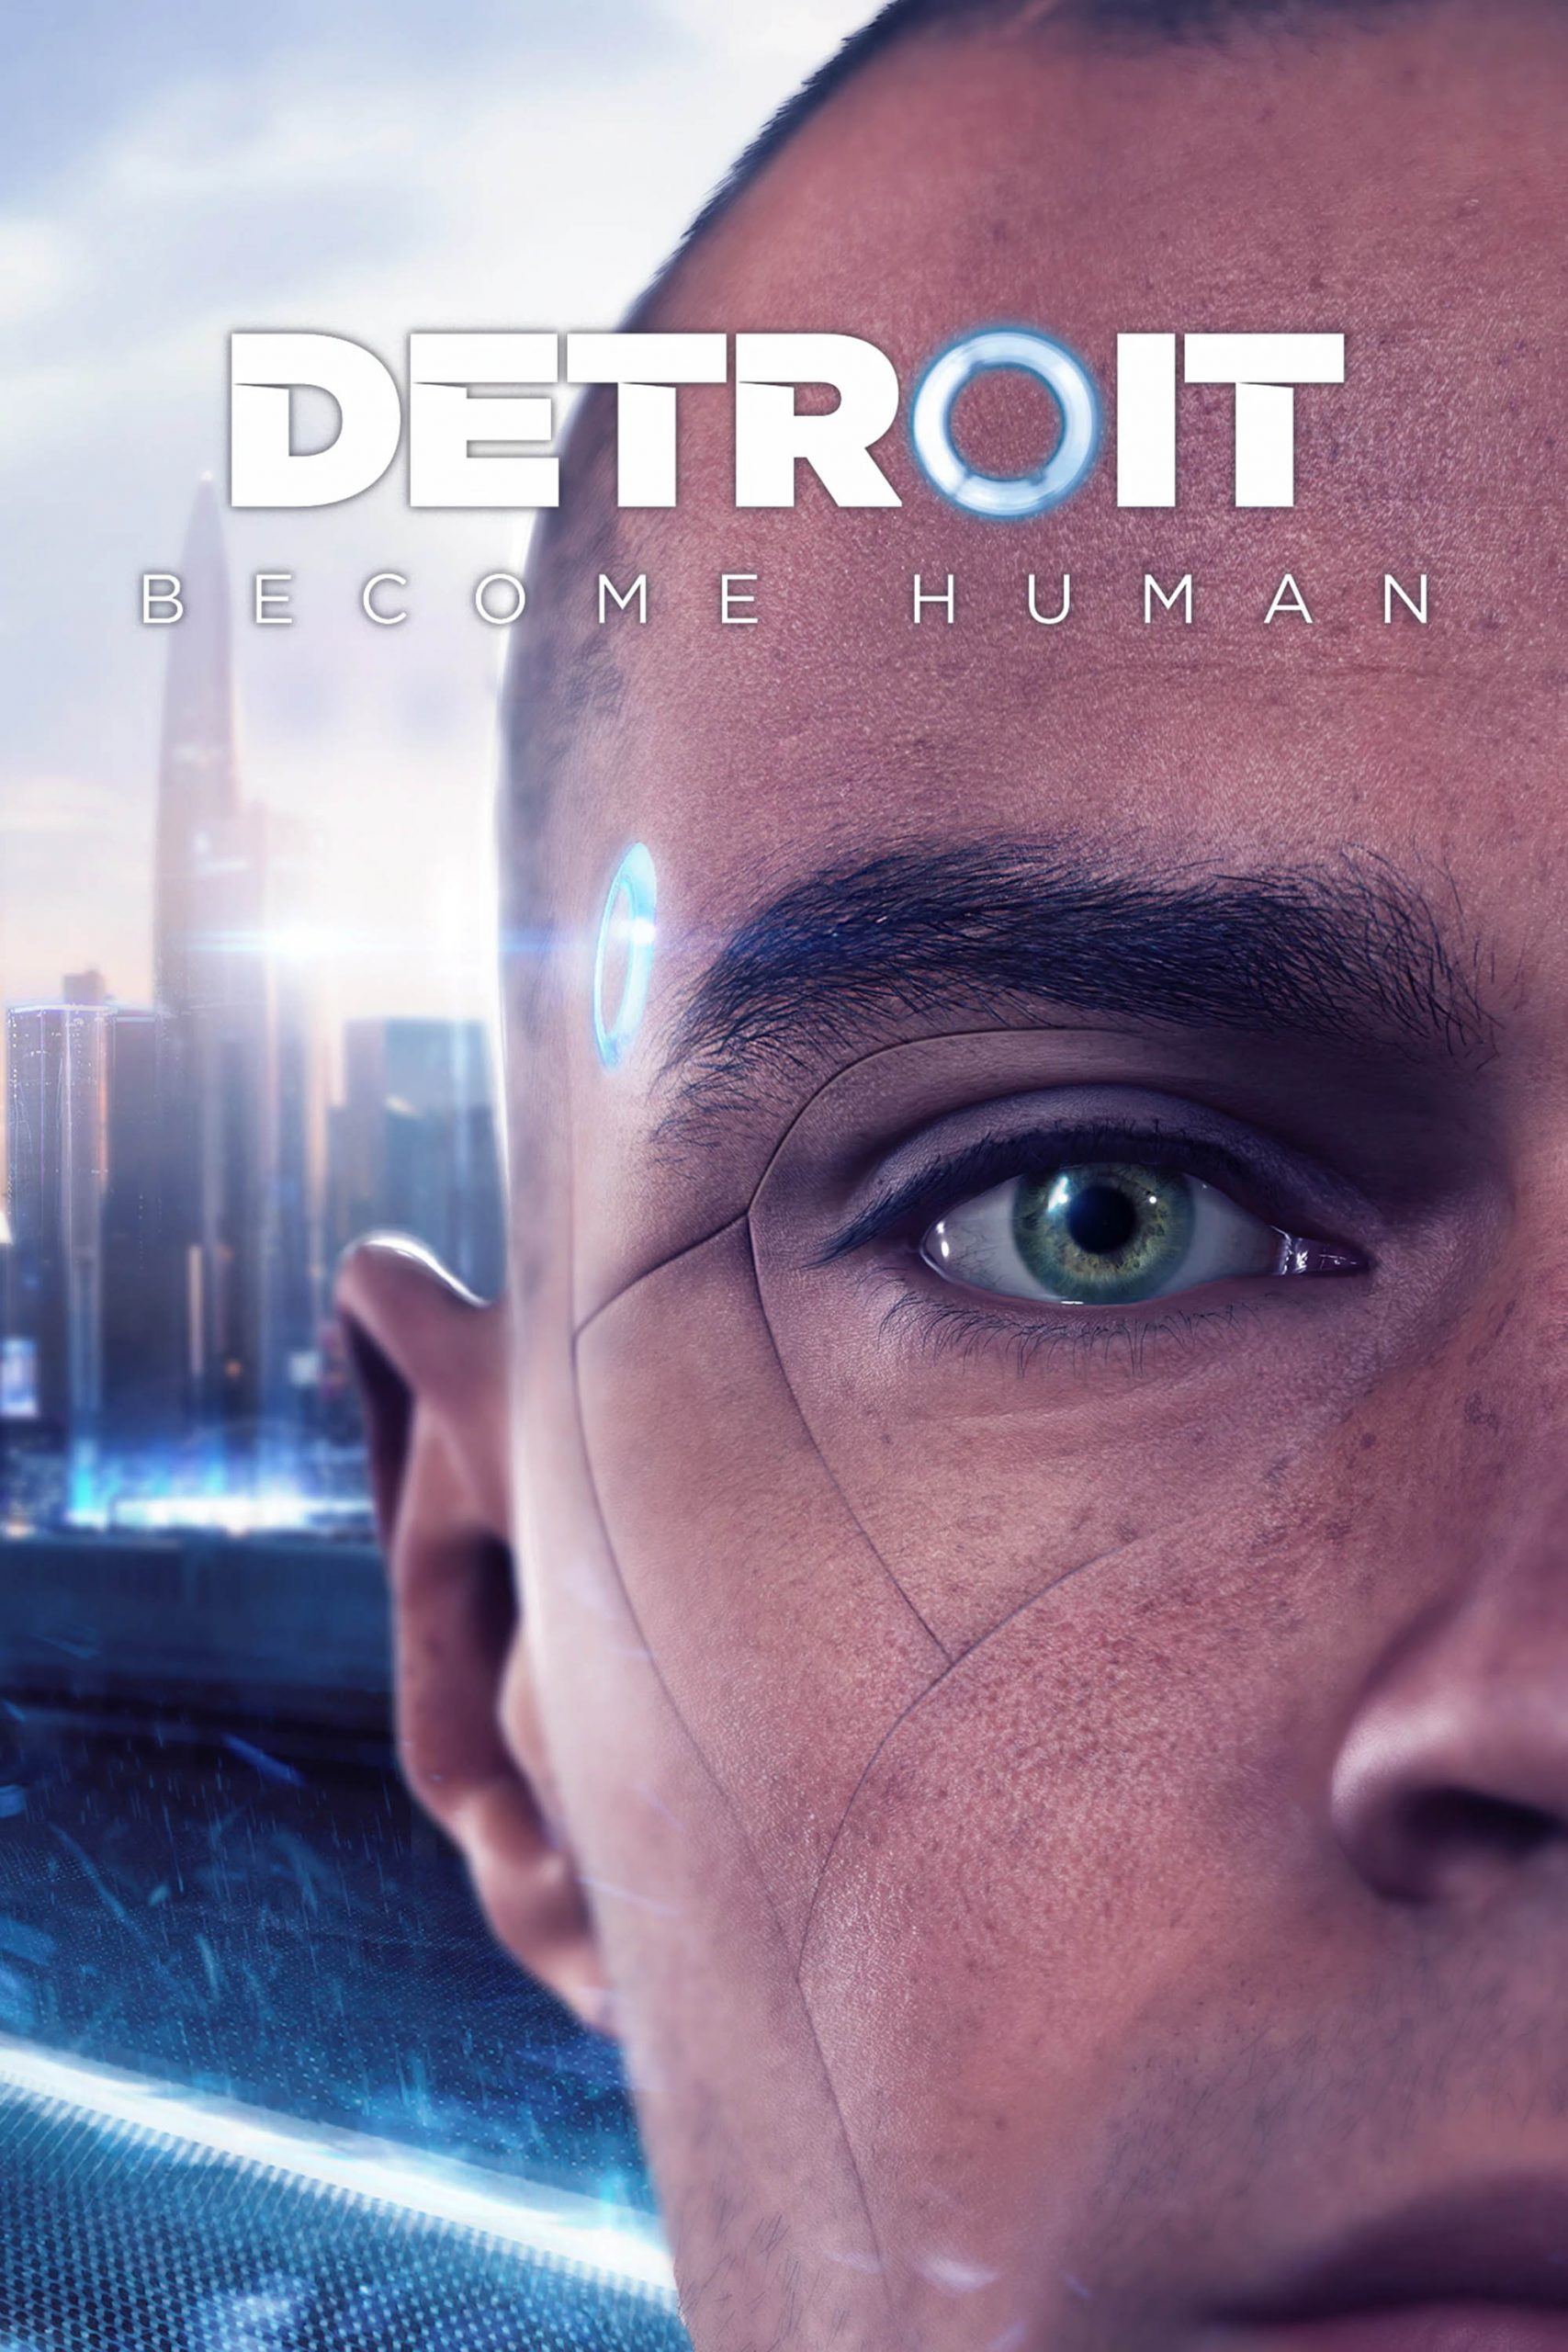 Detroid-become-human-scaled.jpg